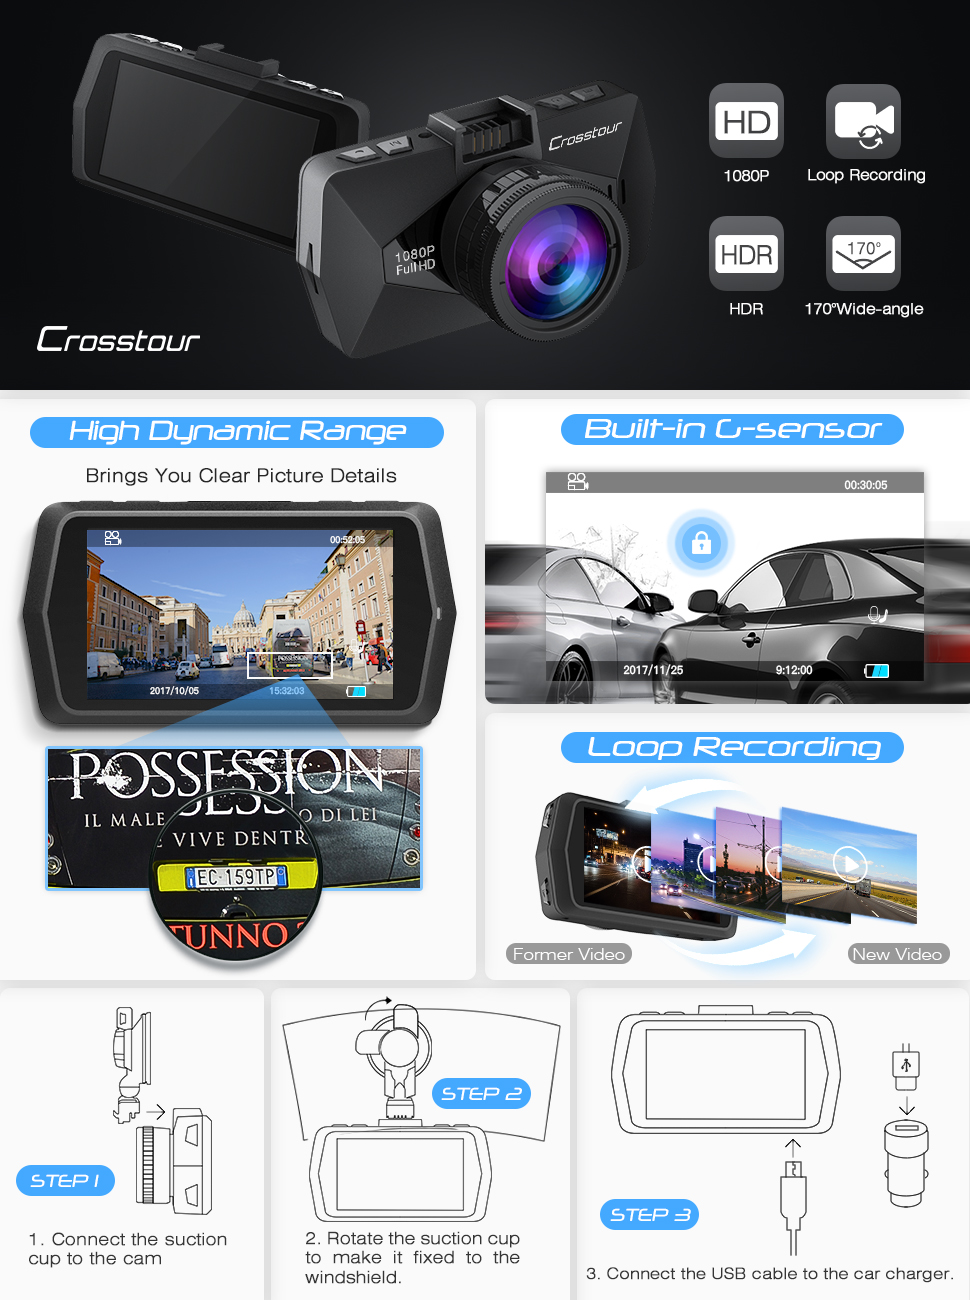 crosstour cr500 1080p full hd dash cam car video recorder. Black Bedroom Furniture Sets. Home Design Ideas